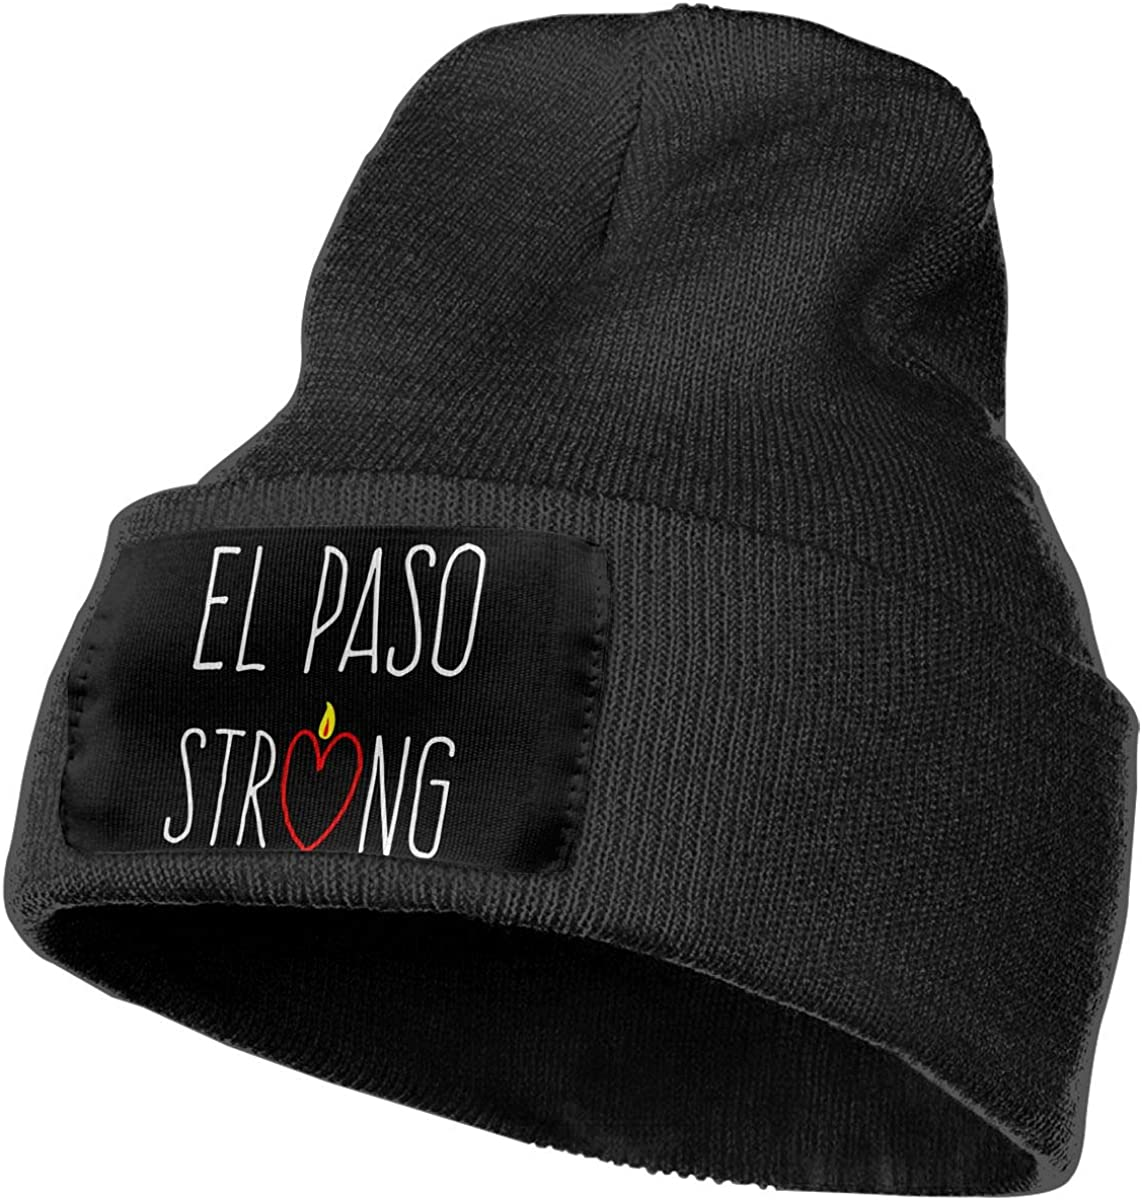 COLLJL-8 Unisex El Paso Strong Outdoor Stretch Knit Beanies Hat Soft Winter Knit Caps